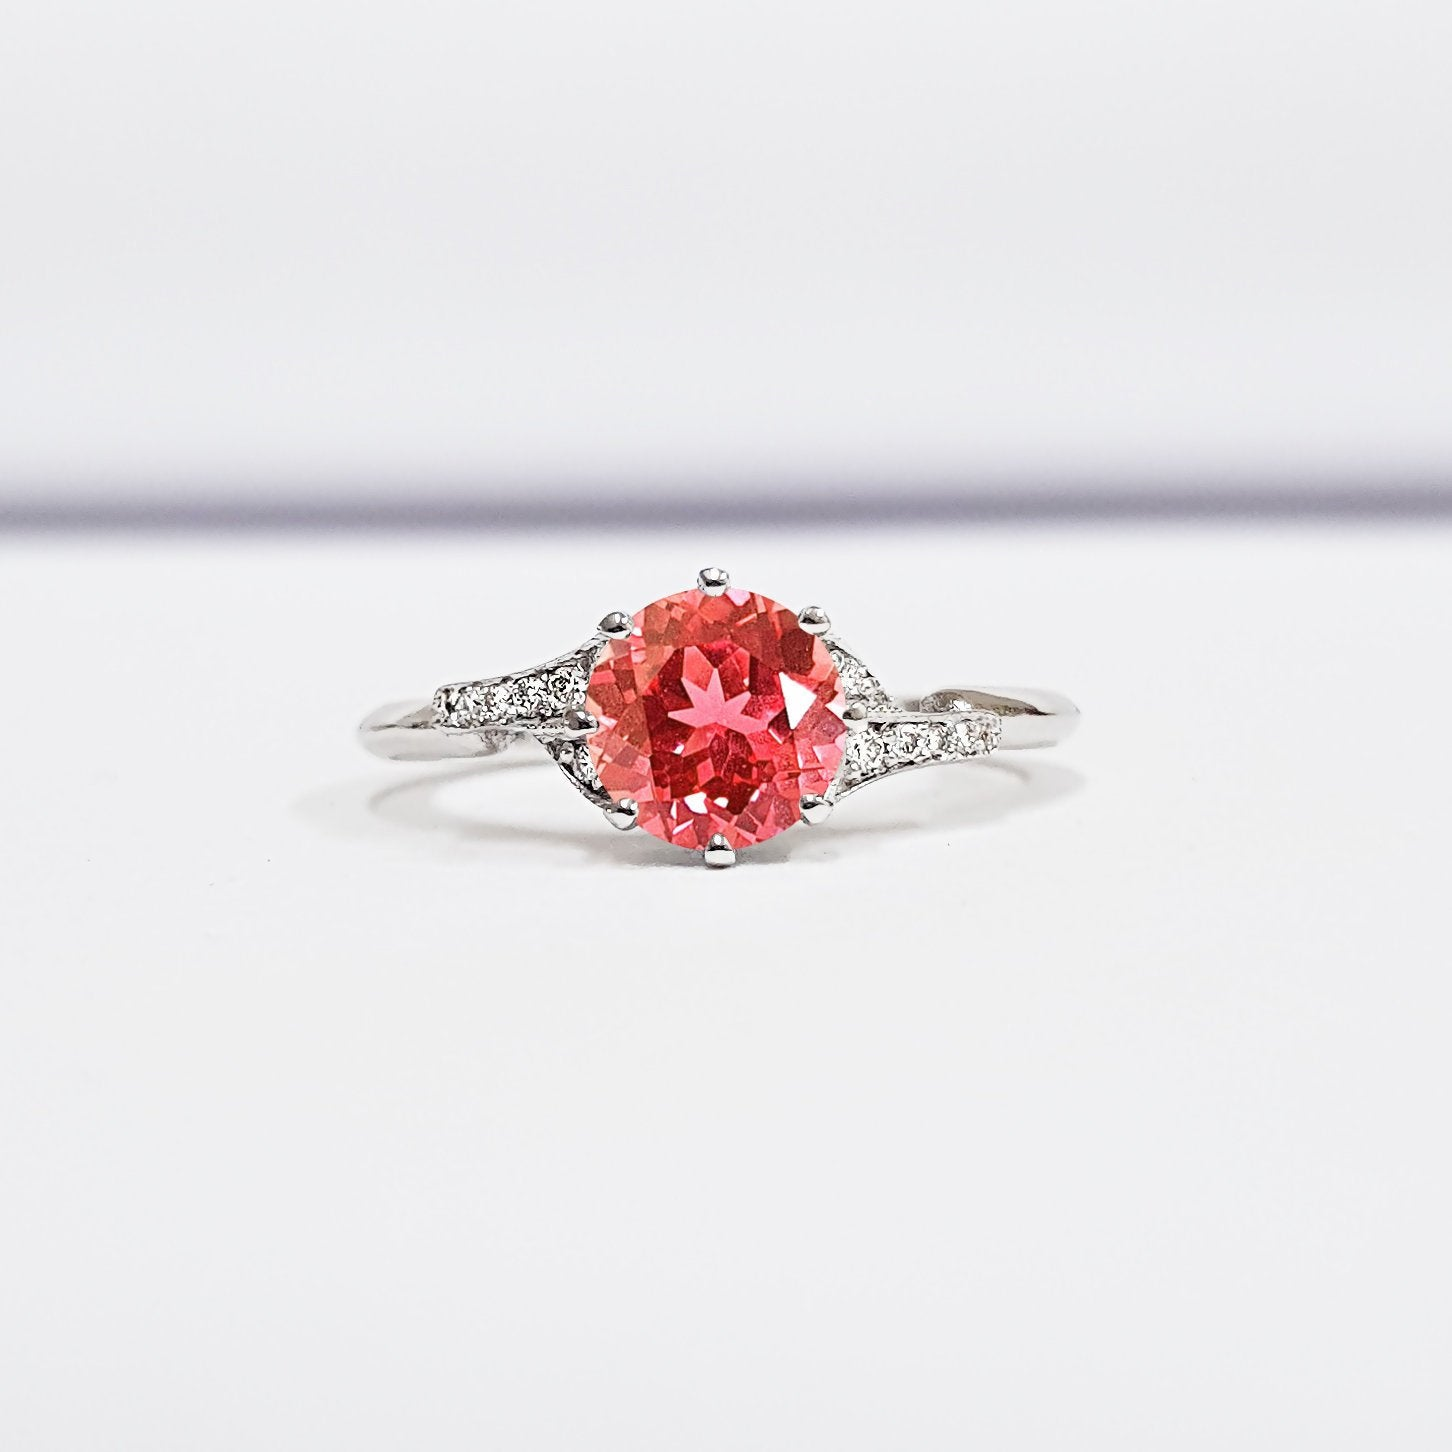 Padparadscha Sapphire And Diamond Engagement Ring Handmade In White Rose Yellow Gold Or Platinum Antique Edwardian Inspired Mount Aardvark Jewellery,Modern White Kitchen Cabinets With Grey Countertops